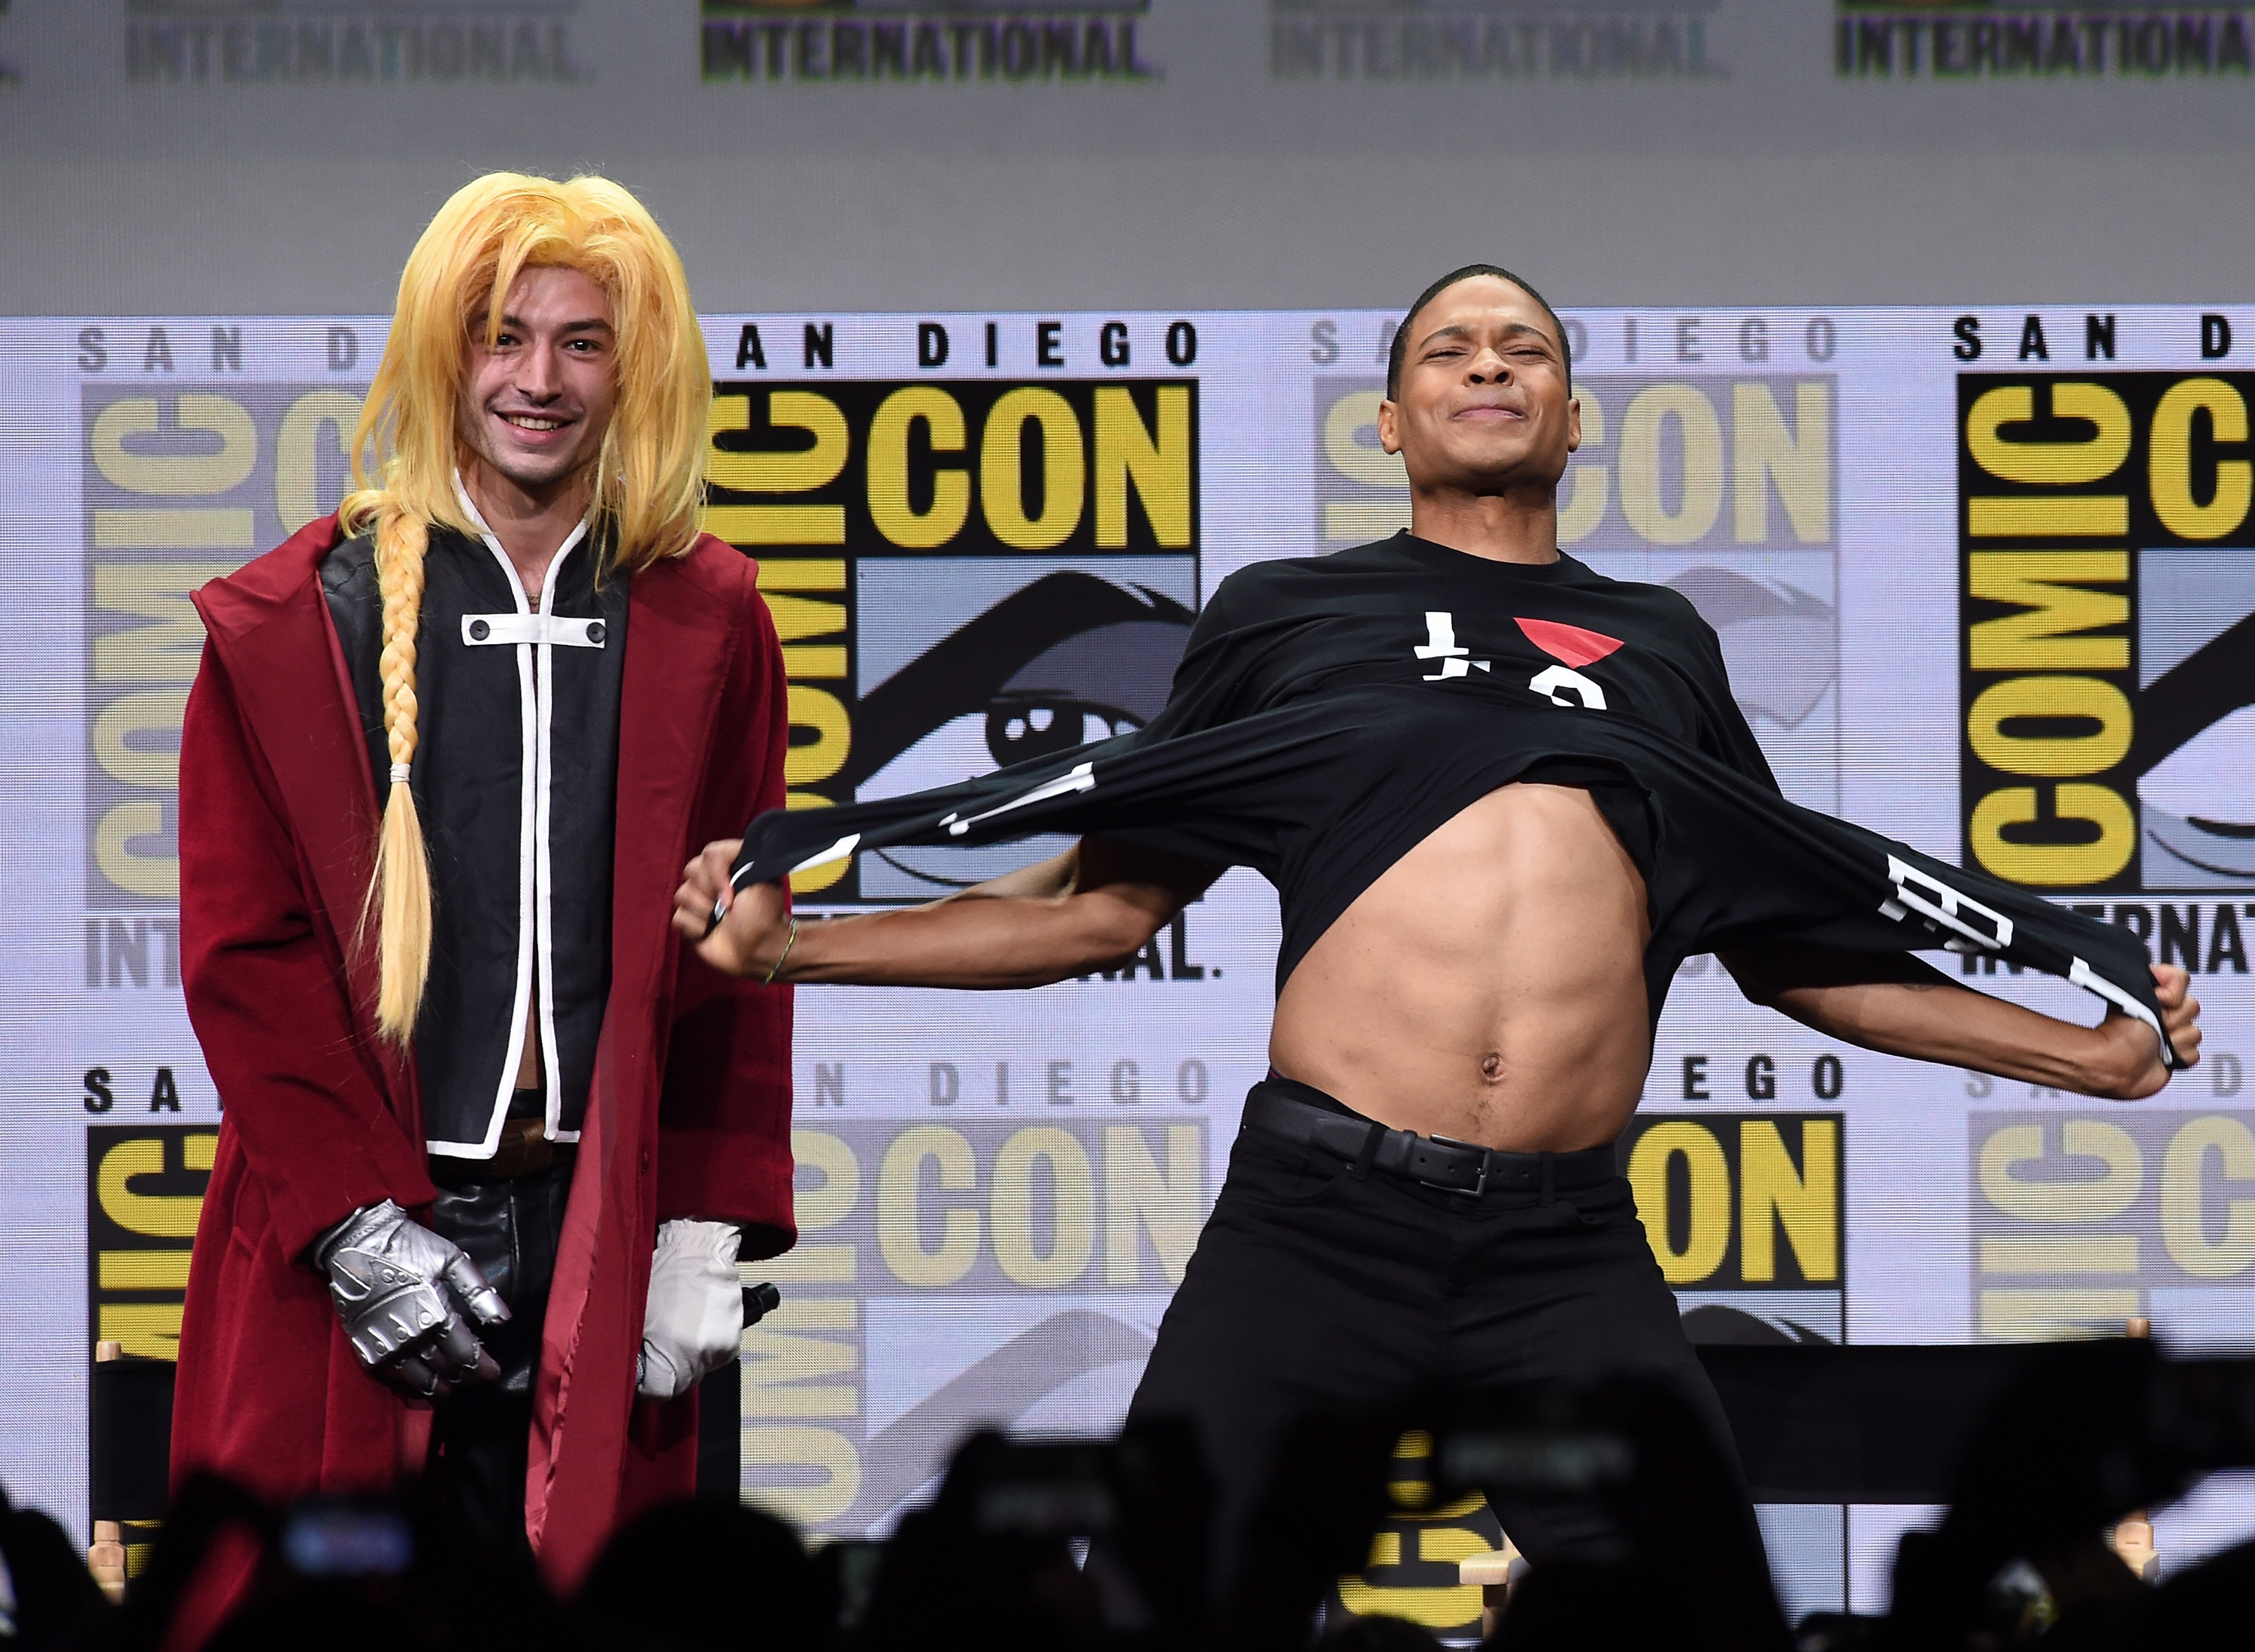 Actors Ezra Miller (L) and Ray Fisher attend the Warner Bros. Pictures  Justice League  Presentation during Comic-Con International 2017 at San Diego Convention Center on July 22, 2017 in San Diego, California